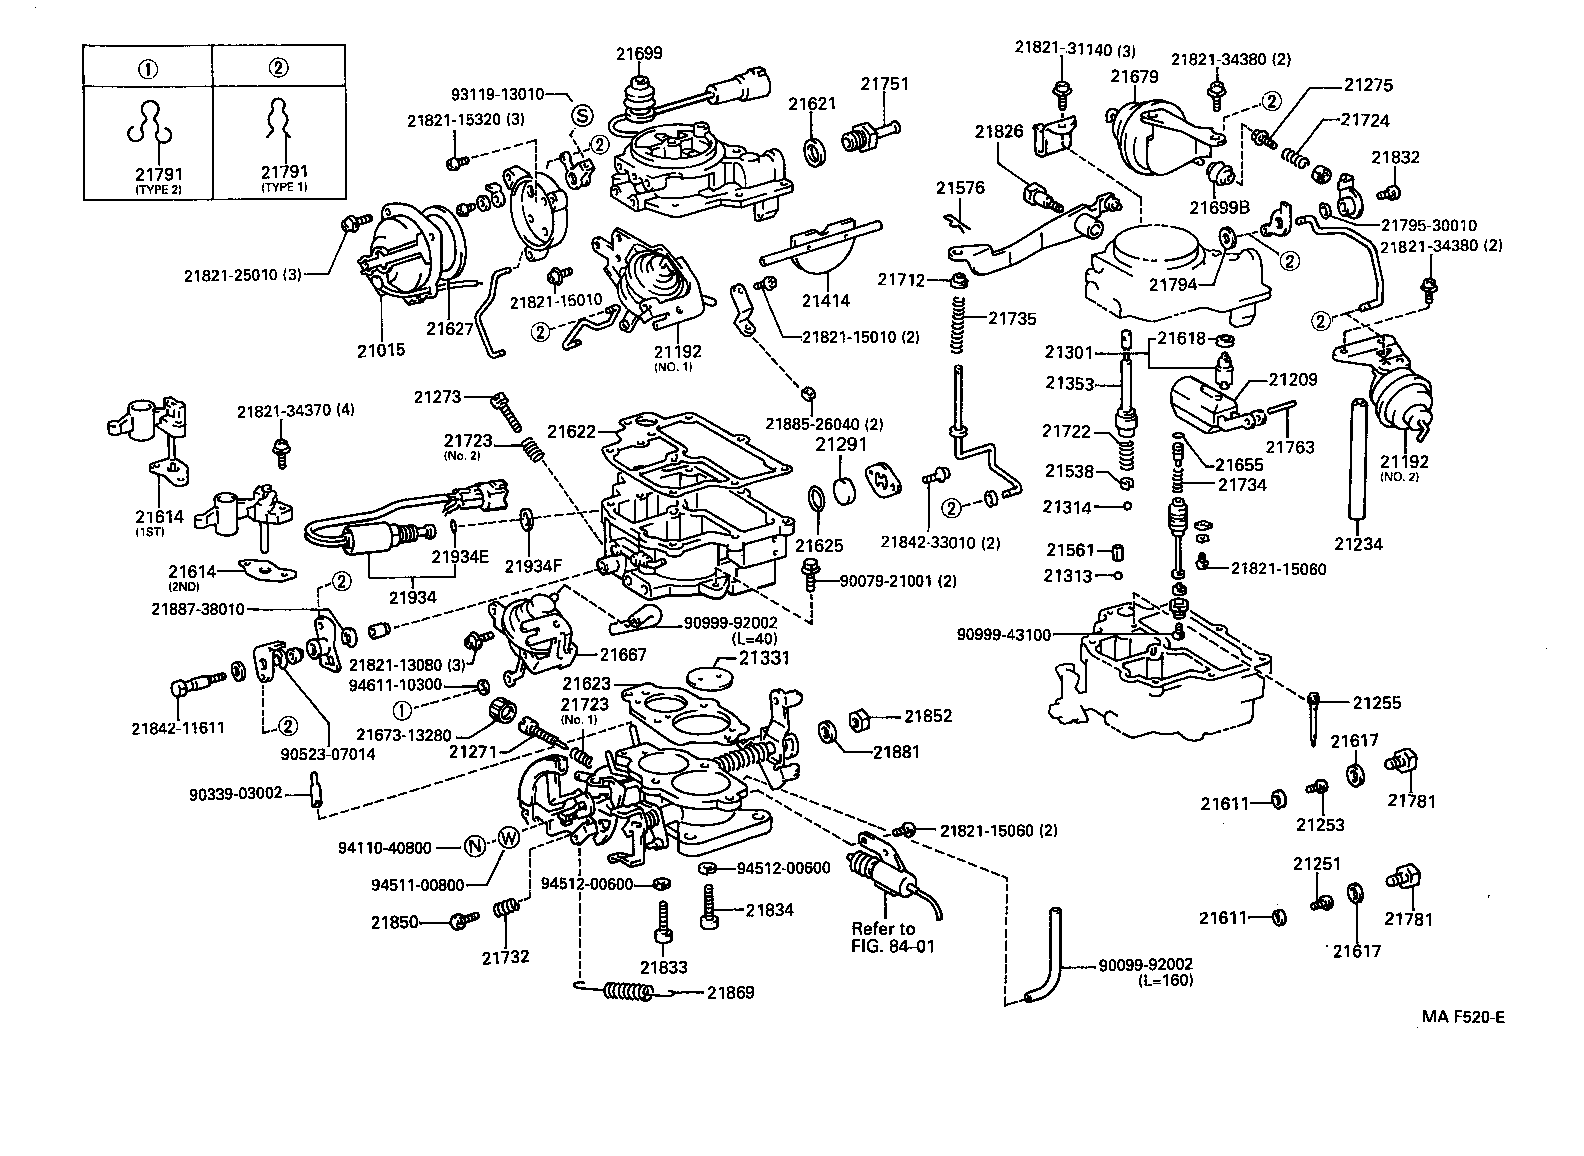 P 0996b43f802c548e besides P 0996b43f8037dcb1 together with Diagram view further Hydraulic Cylinders Diagram likewise Brake line diagram 2000 silverado. on toyota parts master cylinder